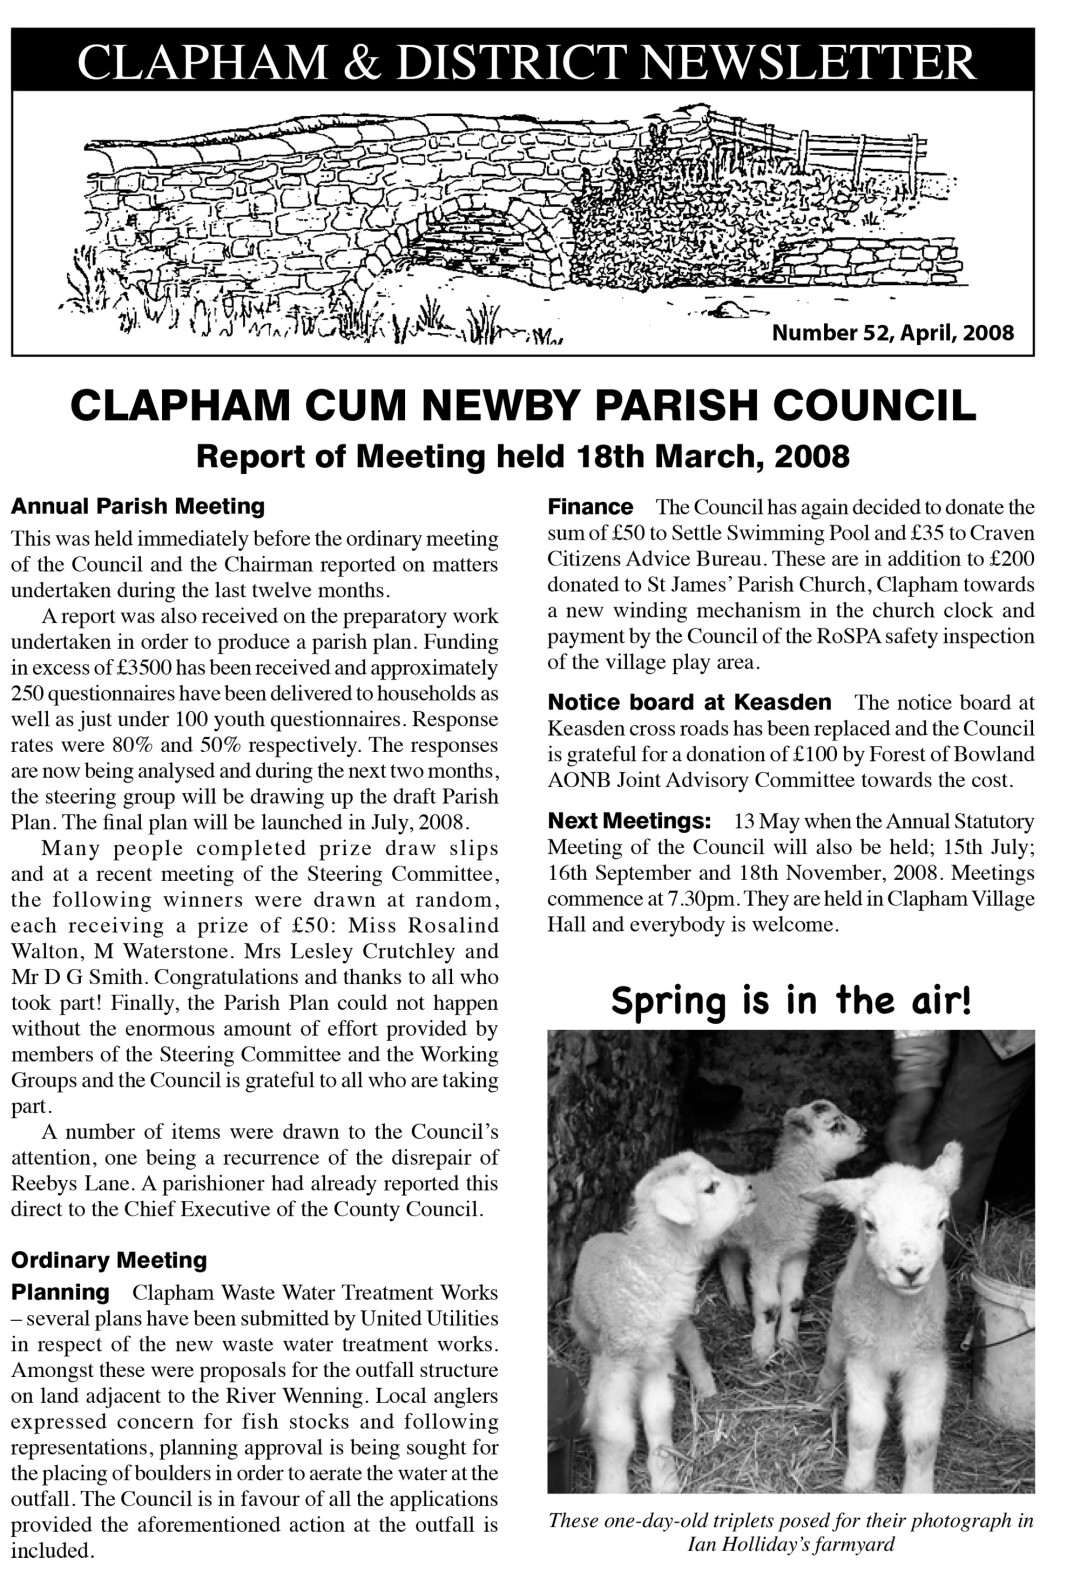 Newsletter_No52_April_2008-1